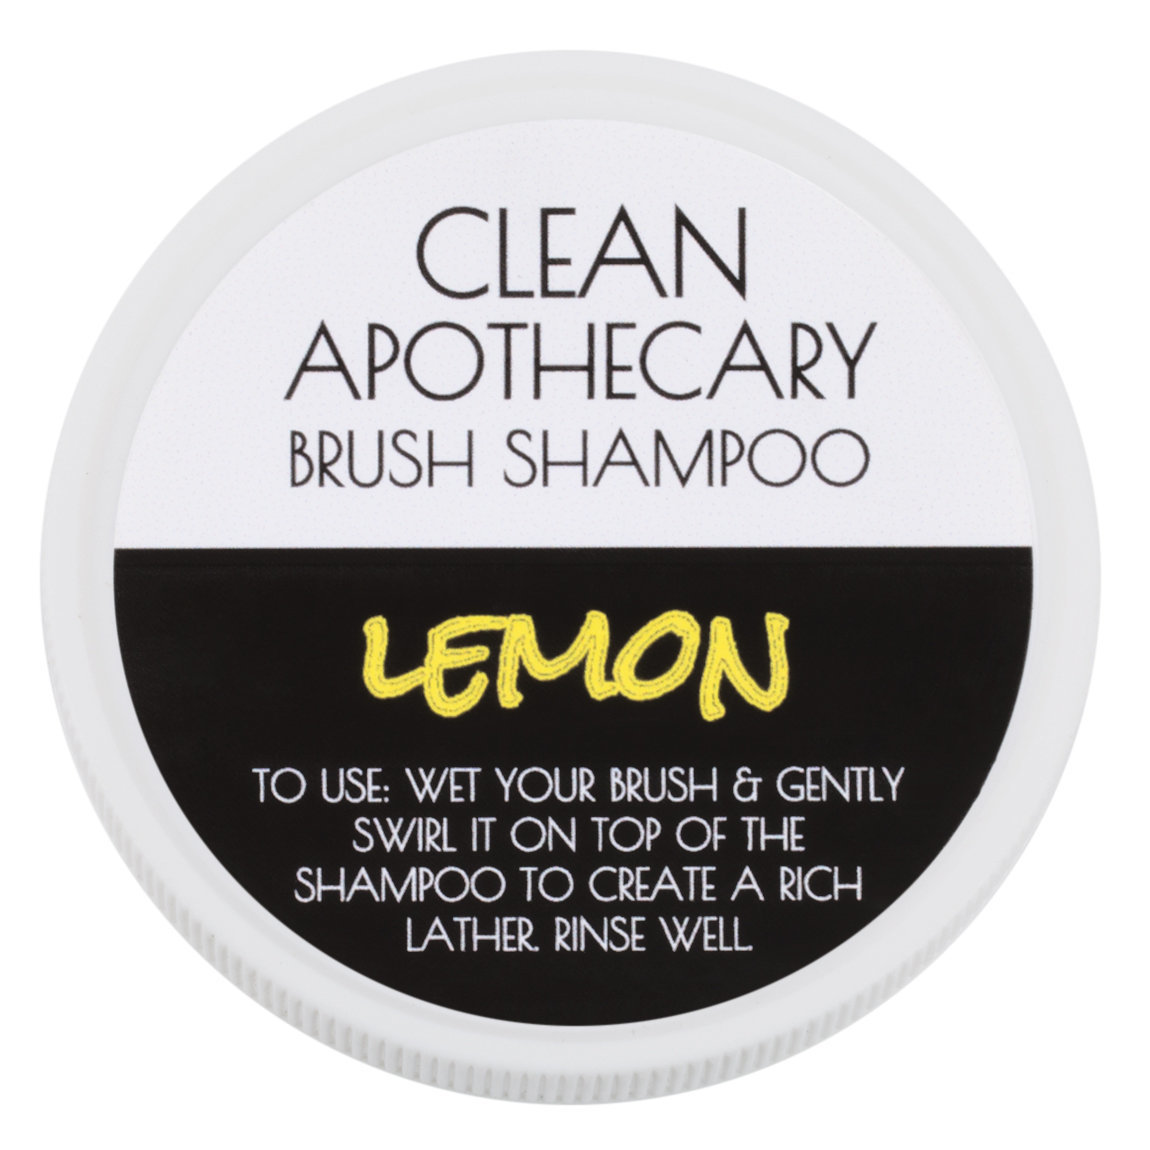 Clean Apothecary Brush Shampoo Lemon alternative view 1 - product swatch.